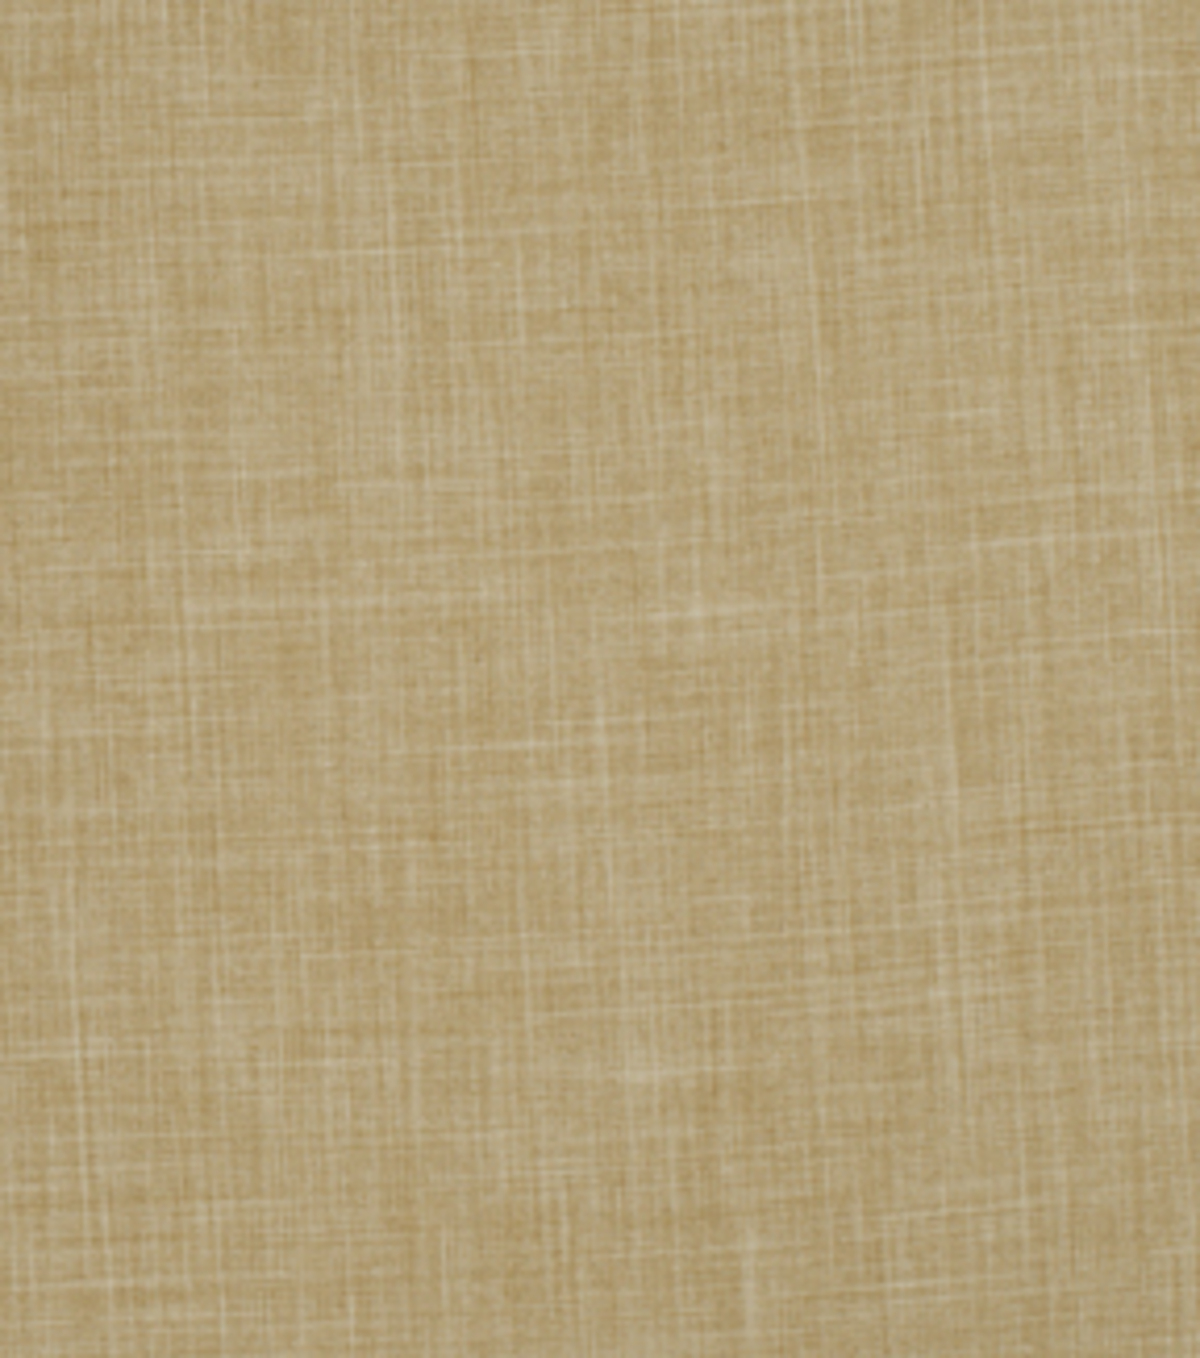 Home Decor 8\u0022x8\u0022 Fabric Swatch-Signature Series Adrift Wheat